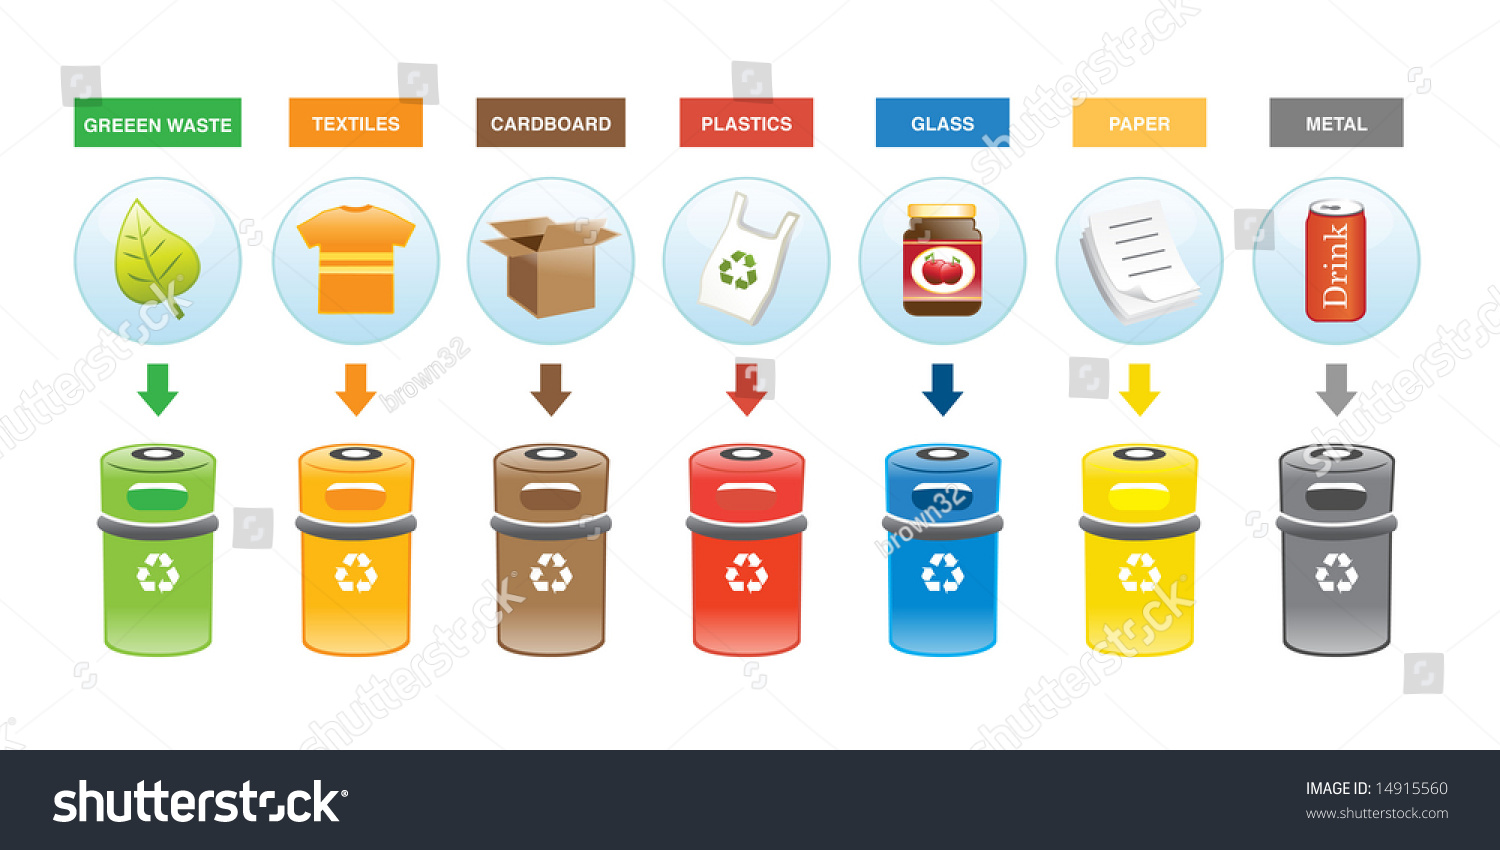 Colorful Recycling Bins Stock Vector